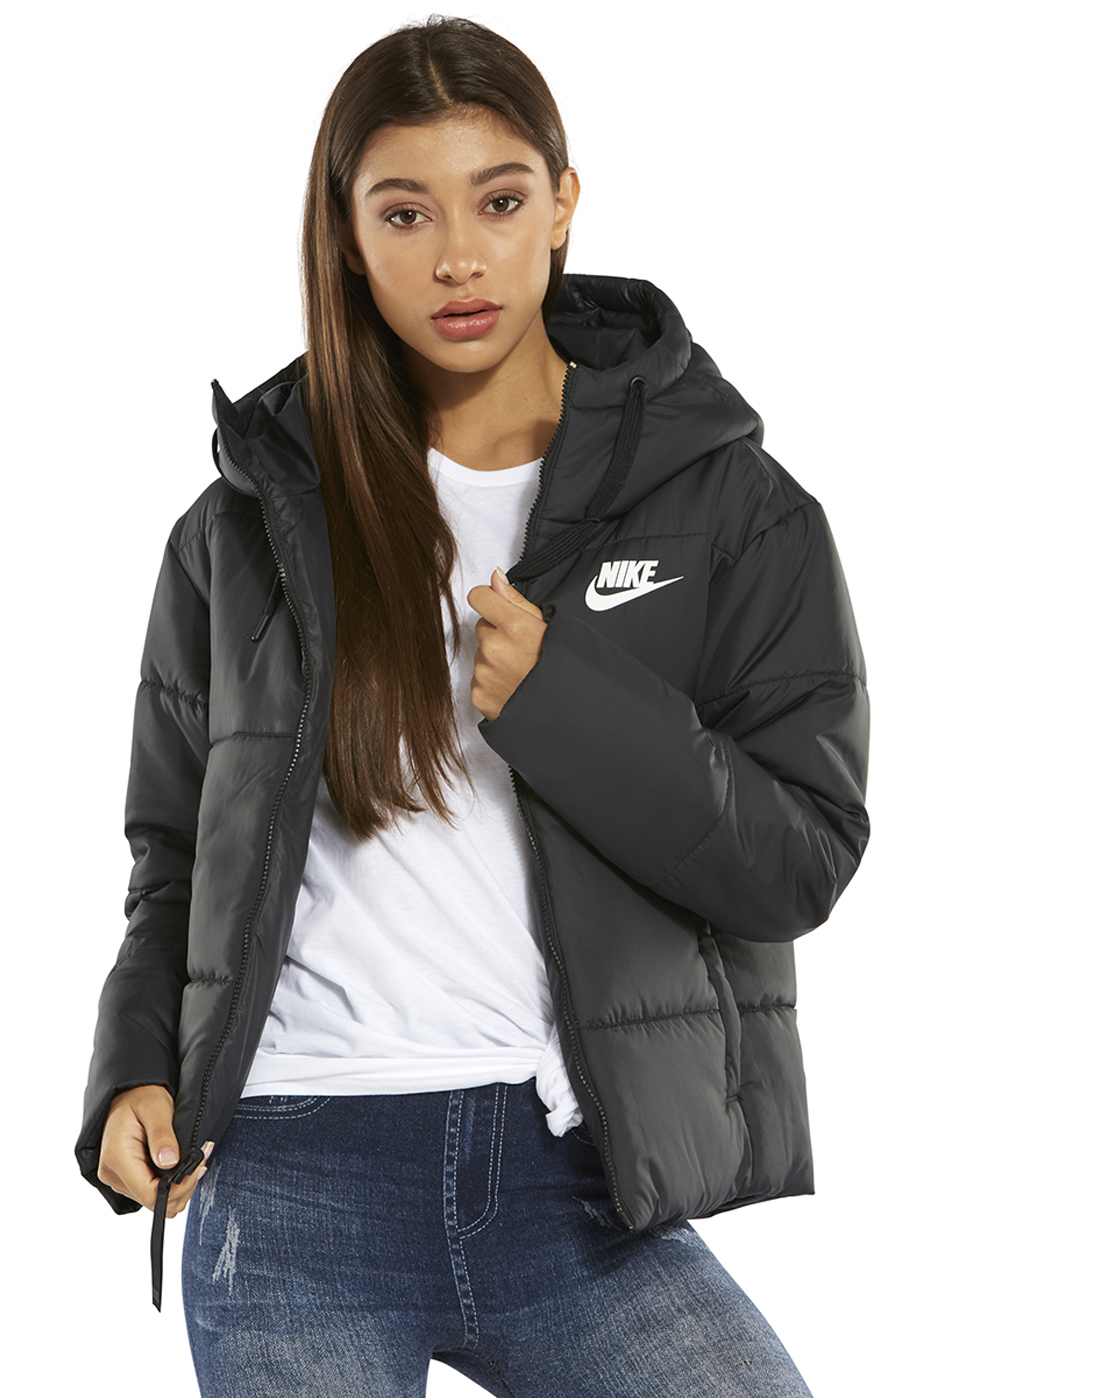 e1472f575aec Women s Black Nike Reversible Padded Jacket